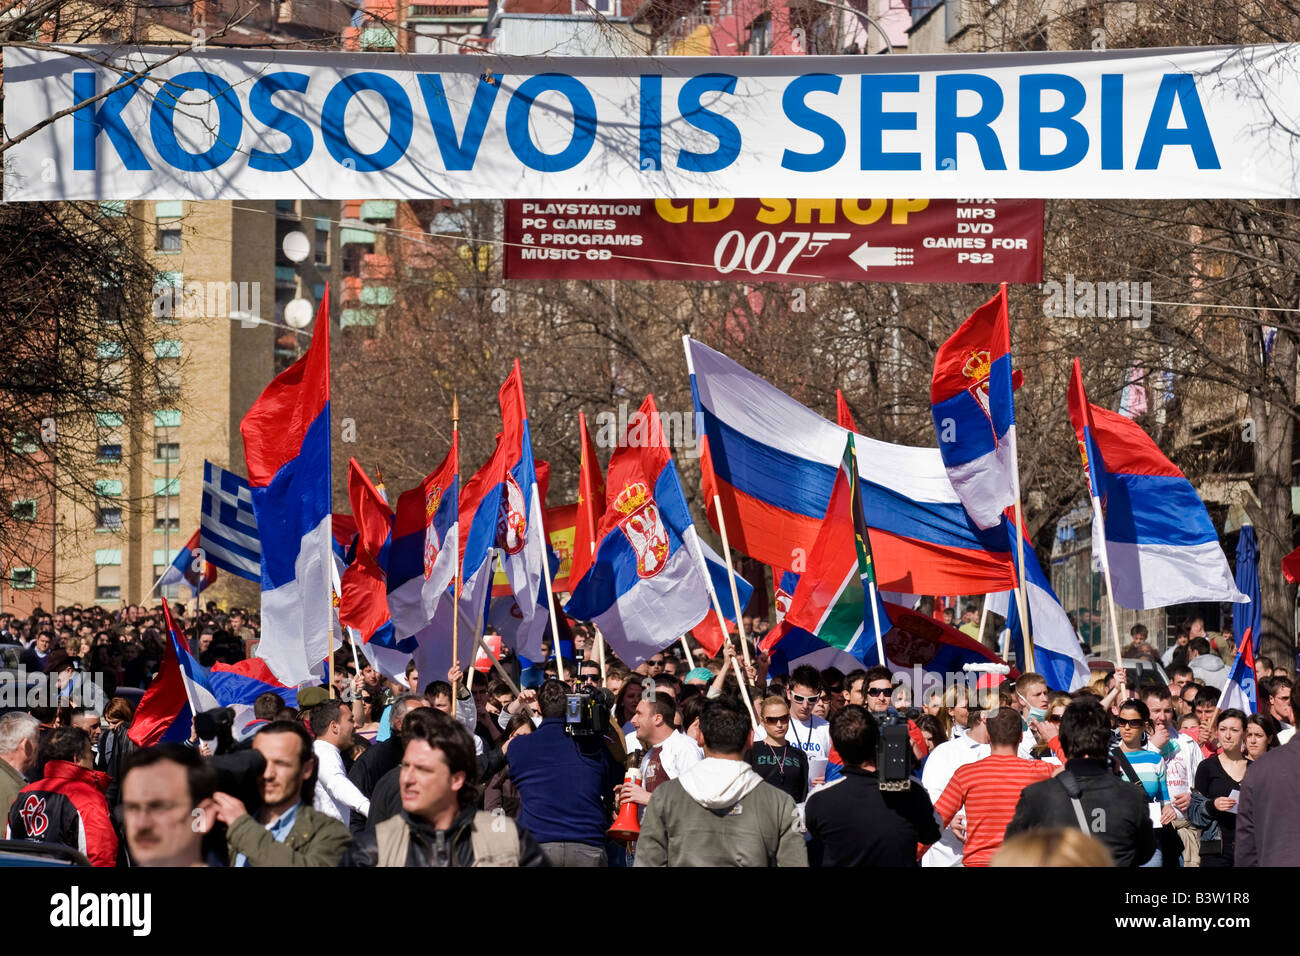 Image result for photos of serbs in kosovo